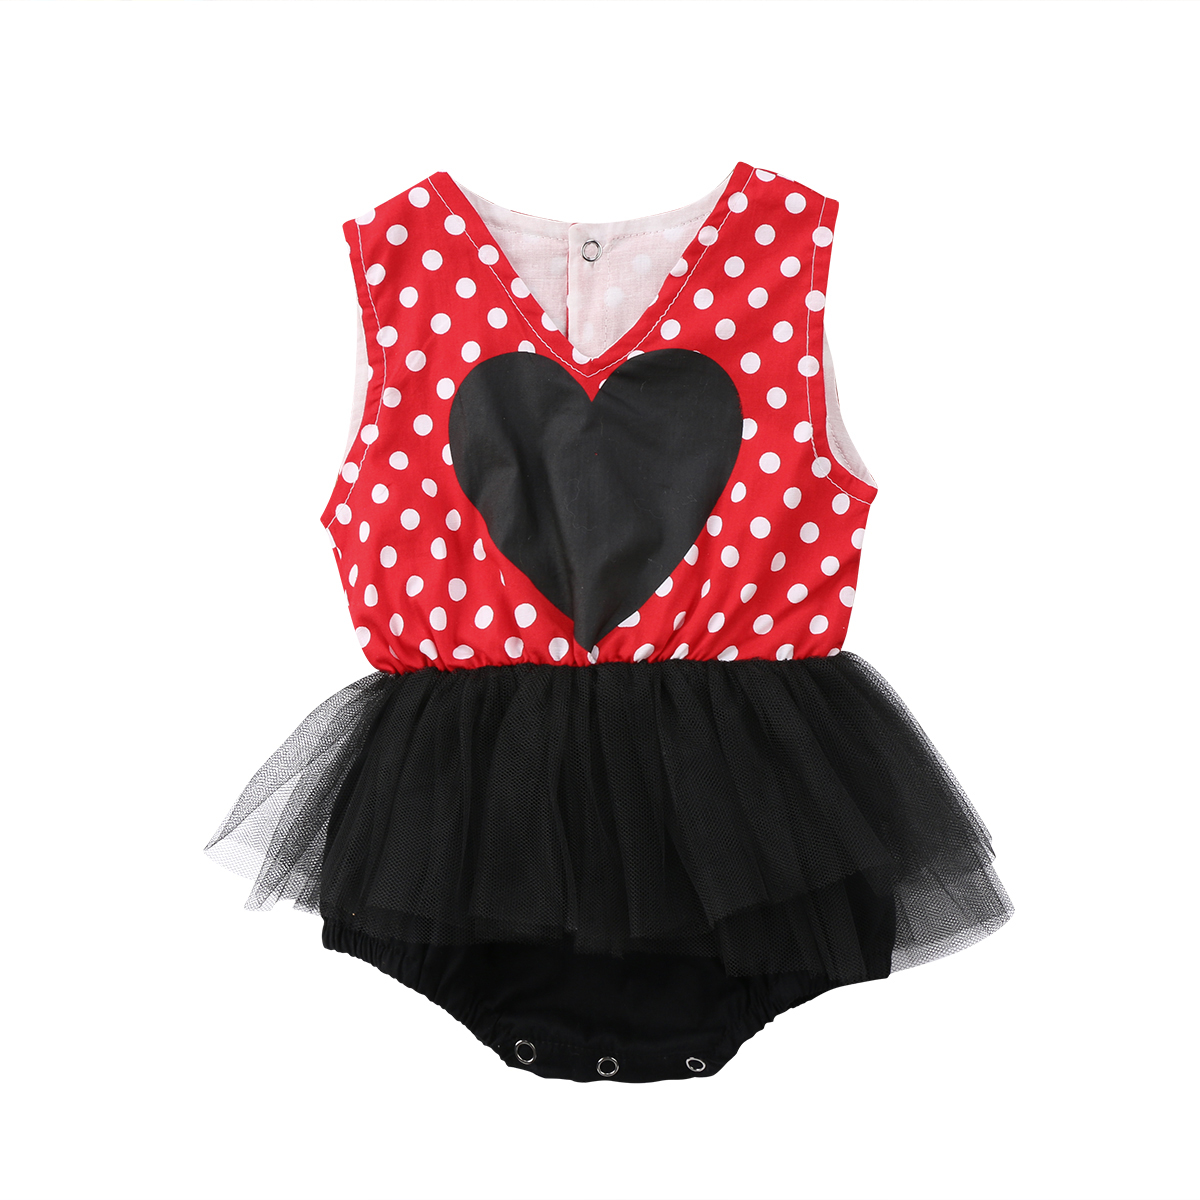 2074234beada 2018 Newborn Baby Girls Polka Dot Sleeveless Heart Jumpsuit Toddler Bodysuit  Infant Lace Tutu Skirt Outfit Cute Clothes-in Bodysuits from Mother   Kids  on ...